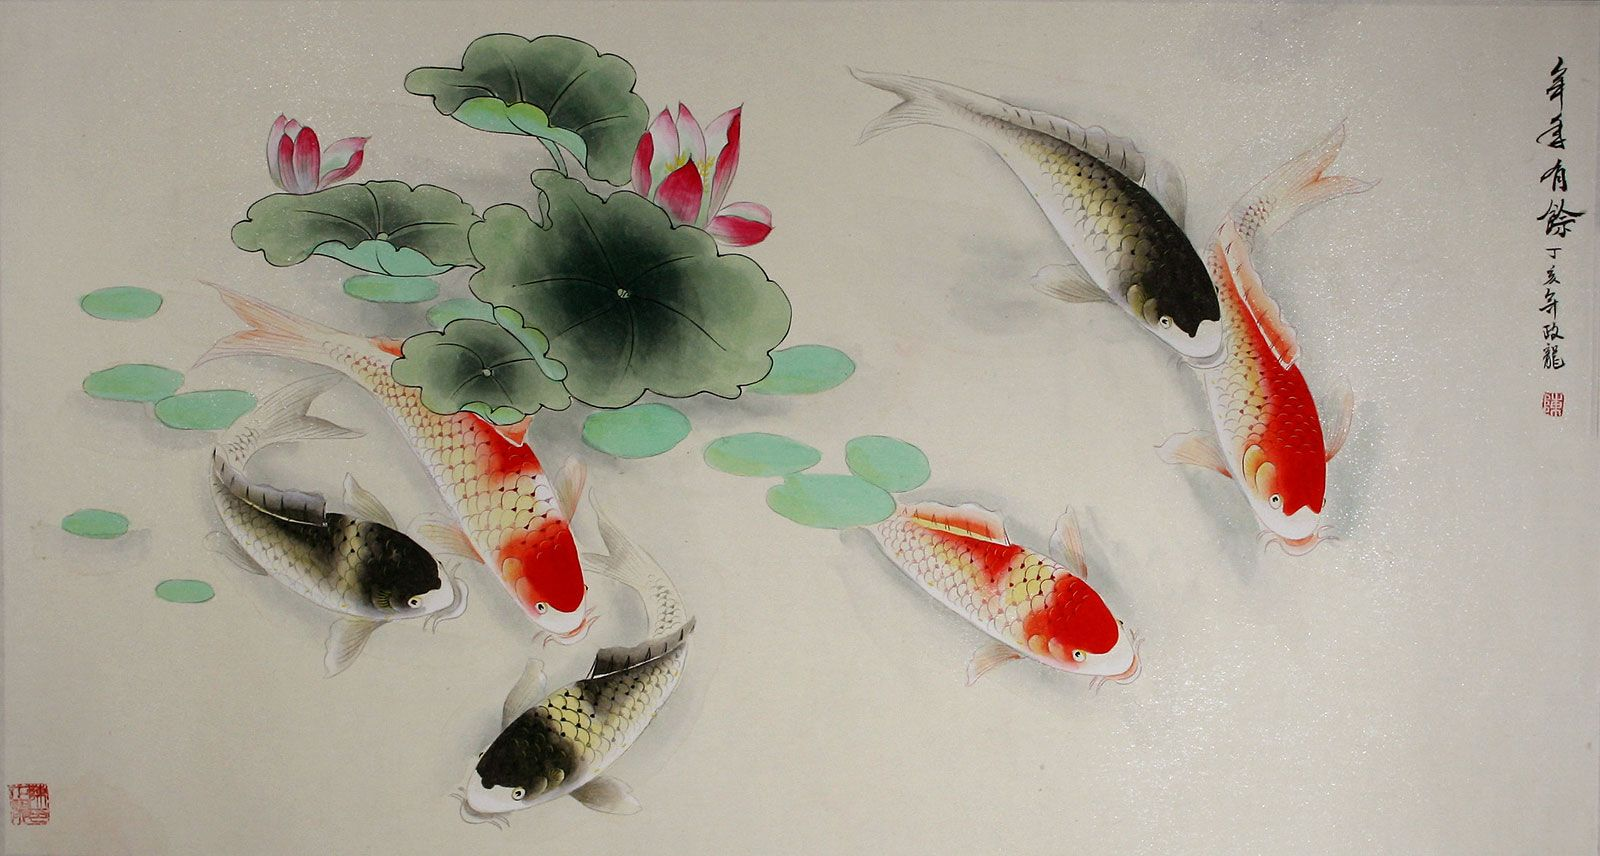 Colorful koi fish drawings artistonthemove dj matty for Colourful koi fish